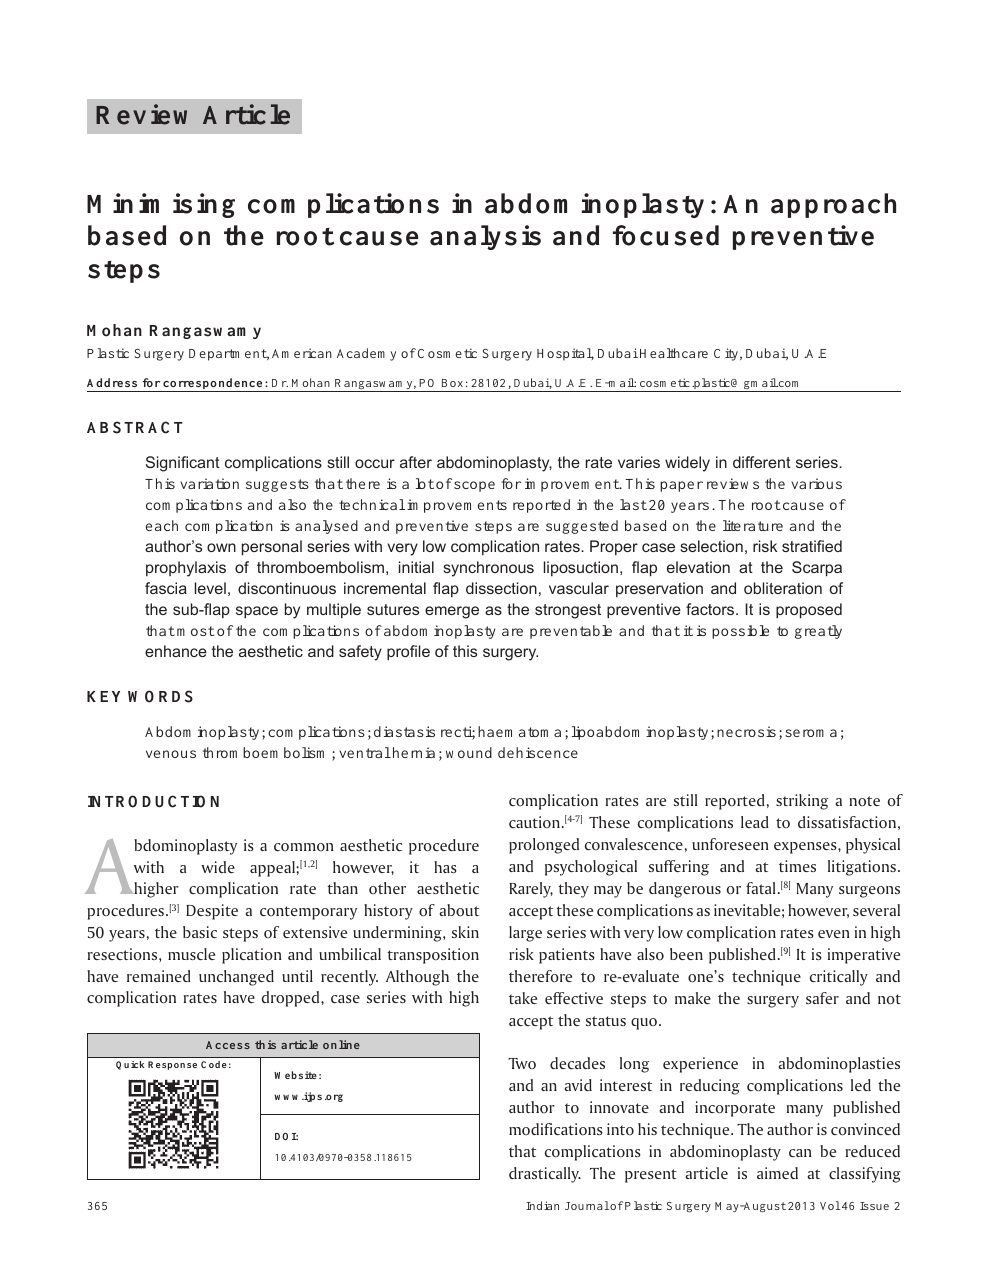 Minimising complications in abdominoplasty: An approach based on the